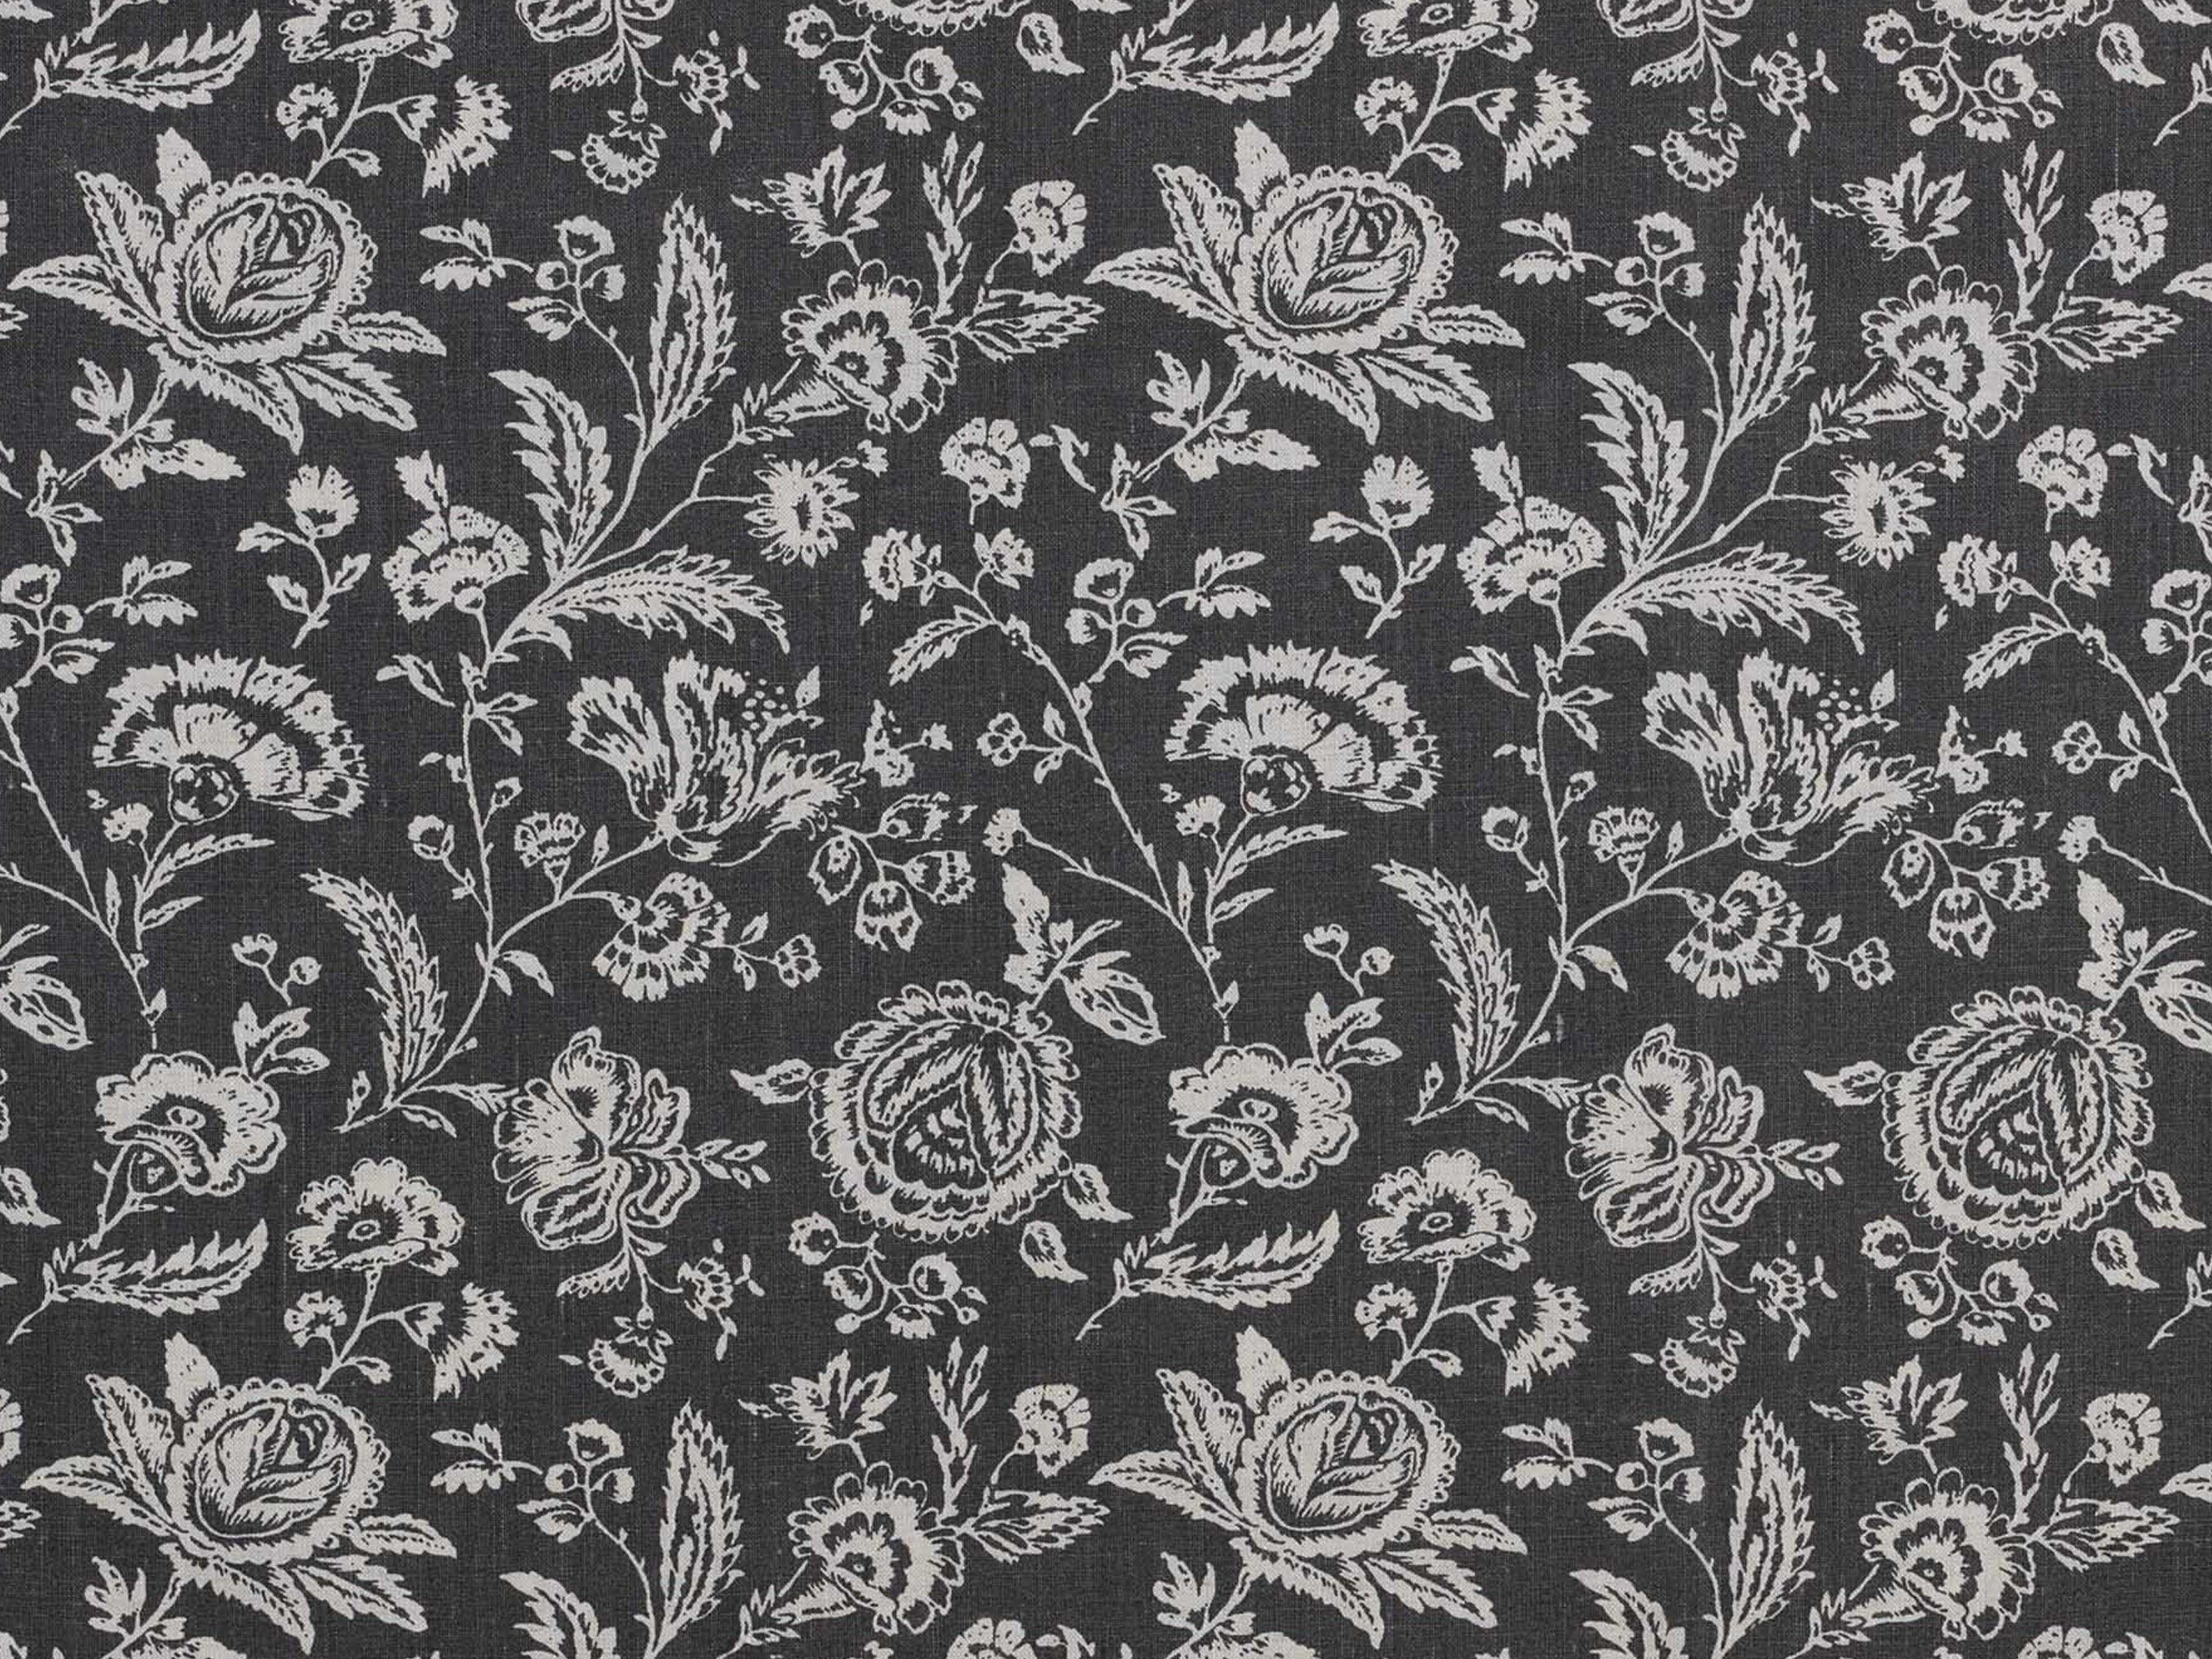 Cabbages Roses French Toile Black Fabric